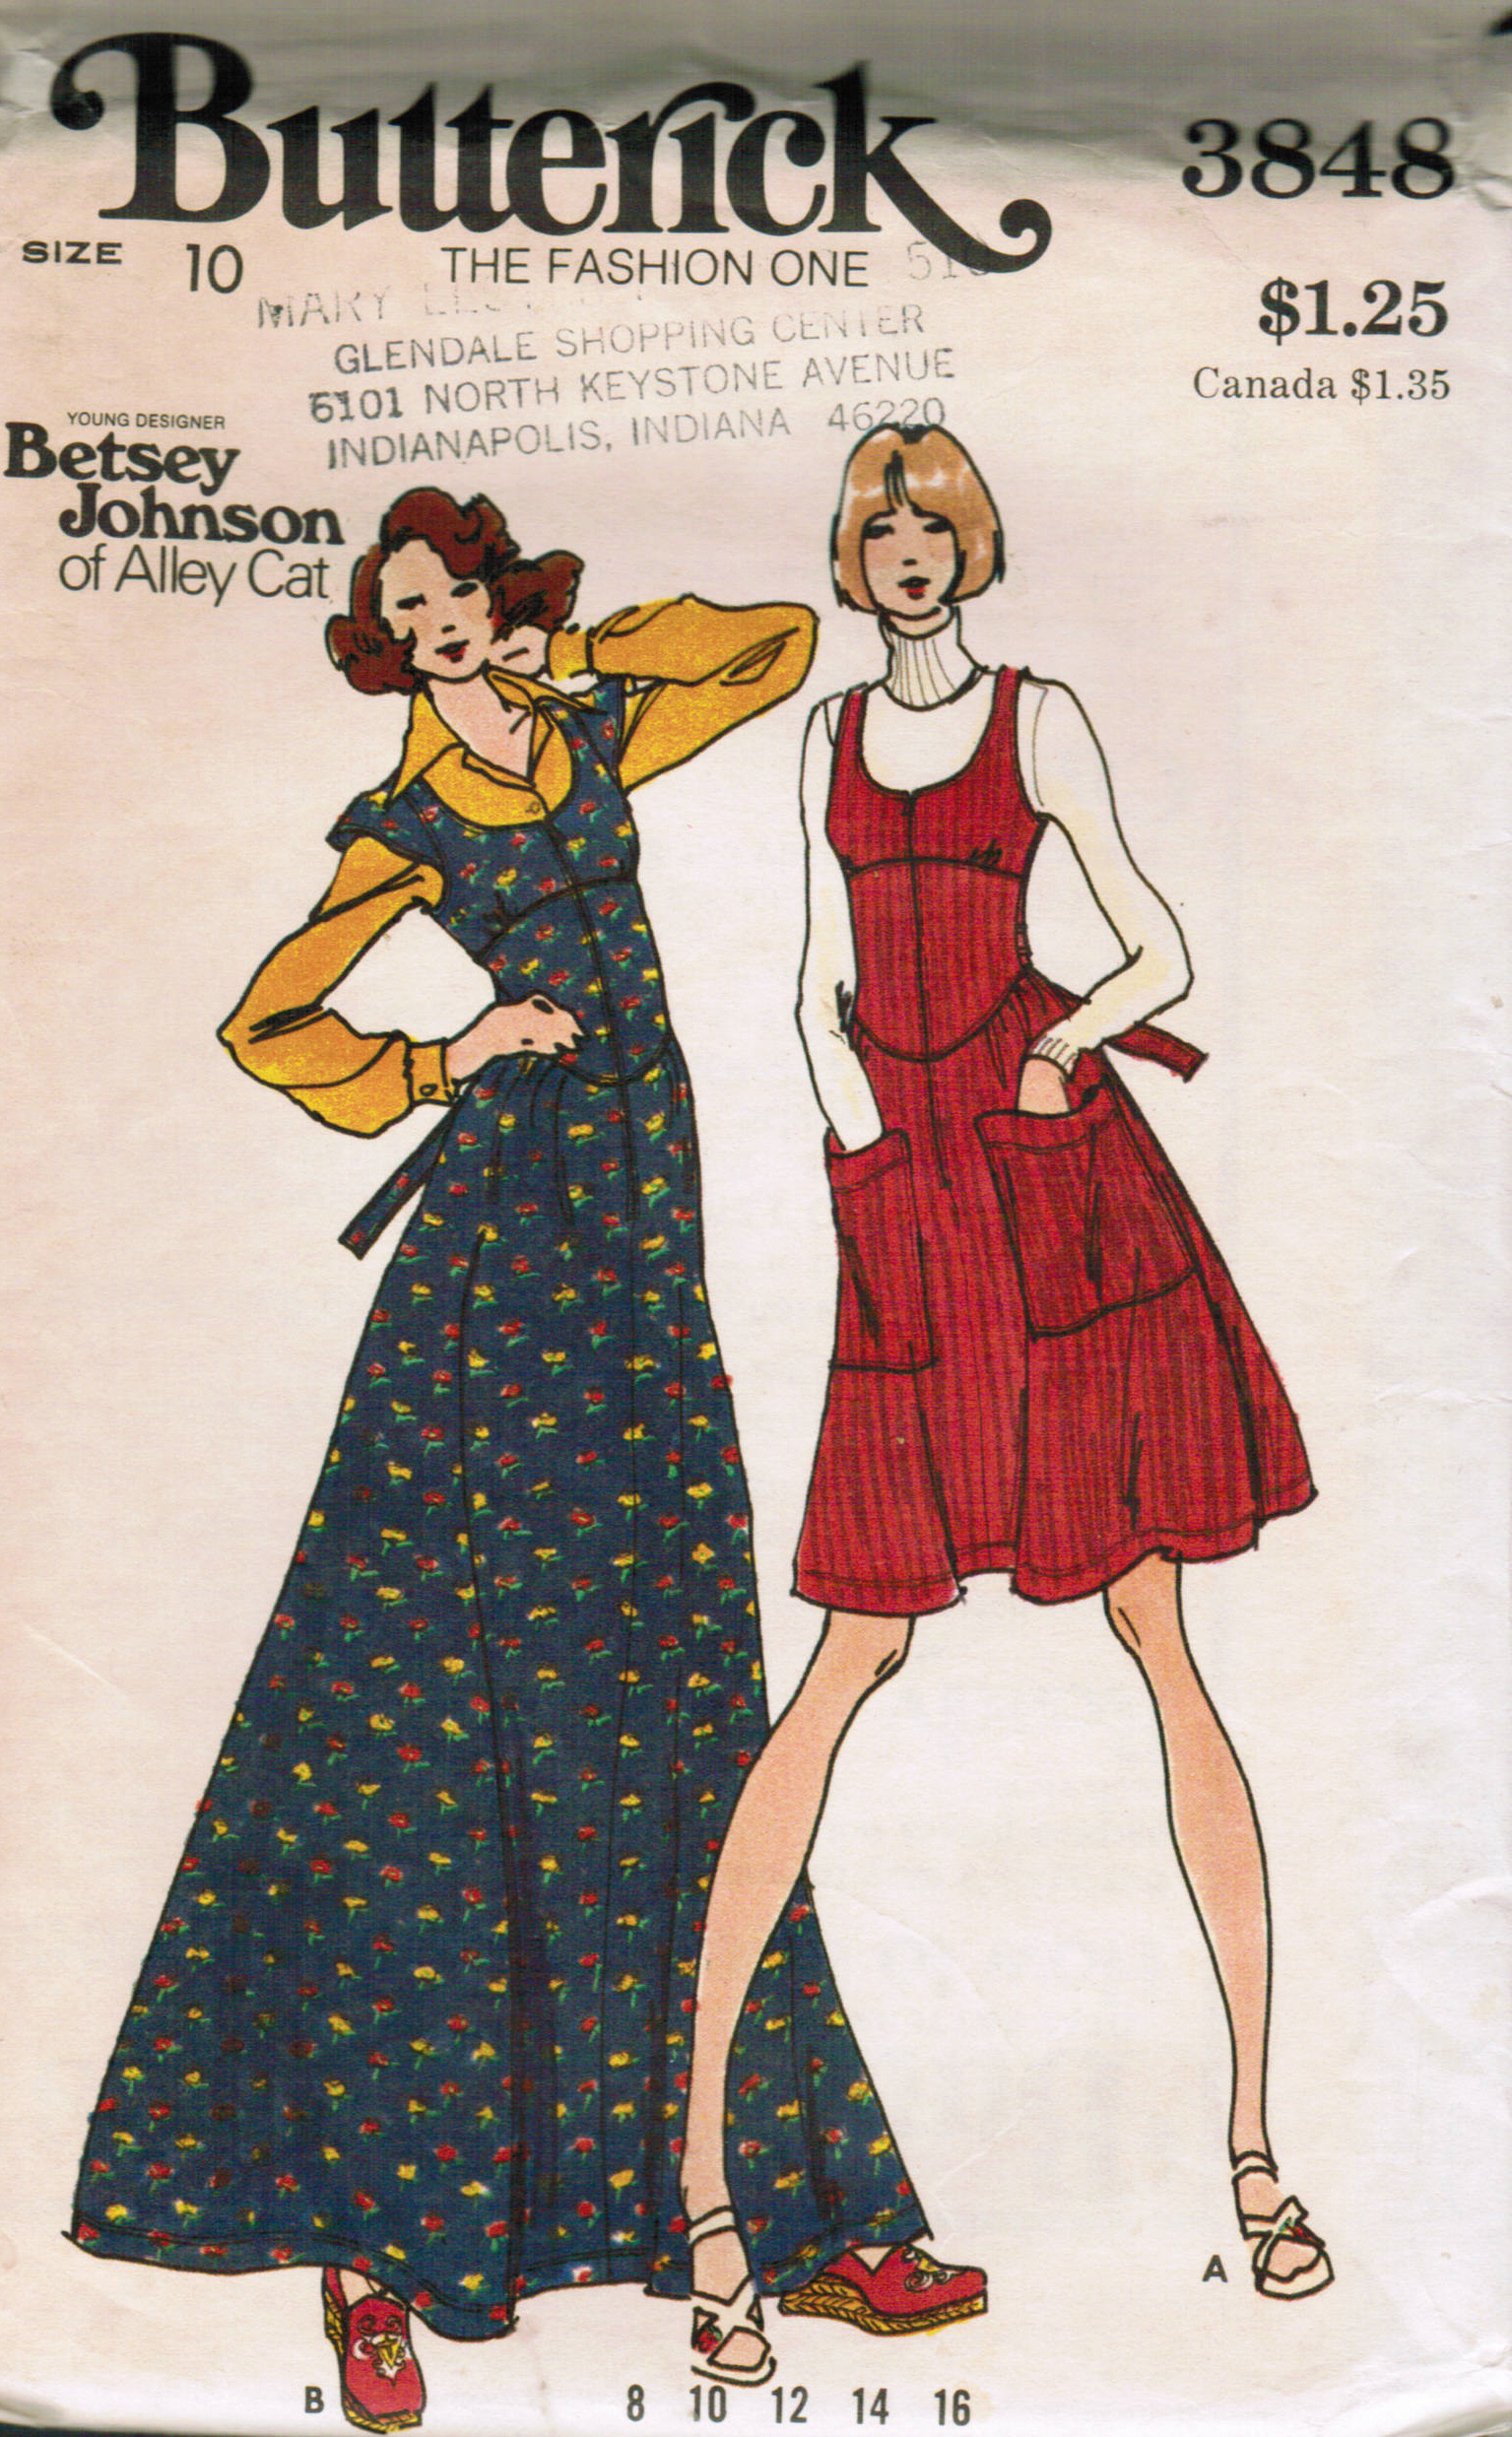 1970s; by Betsey Johnson of Alley Cat. Jumper in two lengths has close fitting bodice lined to edge cutaway armholes U neckline shaped inset midriff ... & Butterick 3848 | Vintage Sewing Patterns | FANDOM powered by Wikia